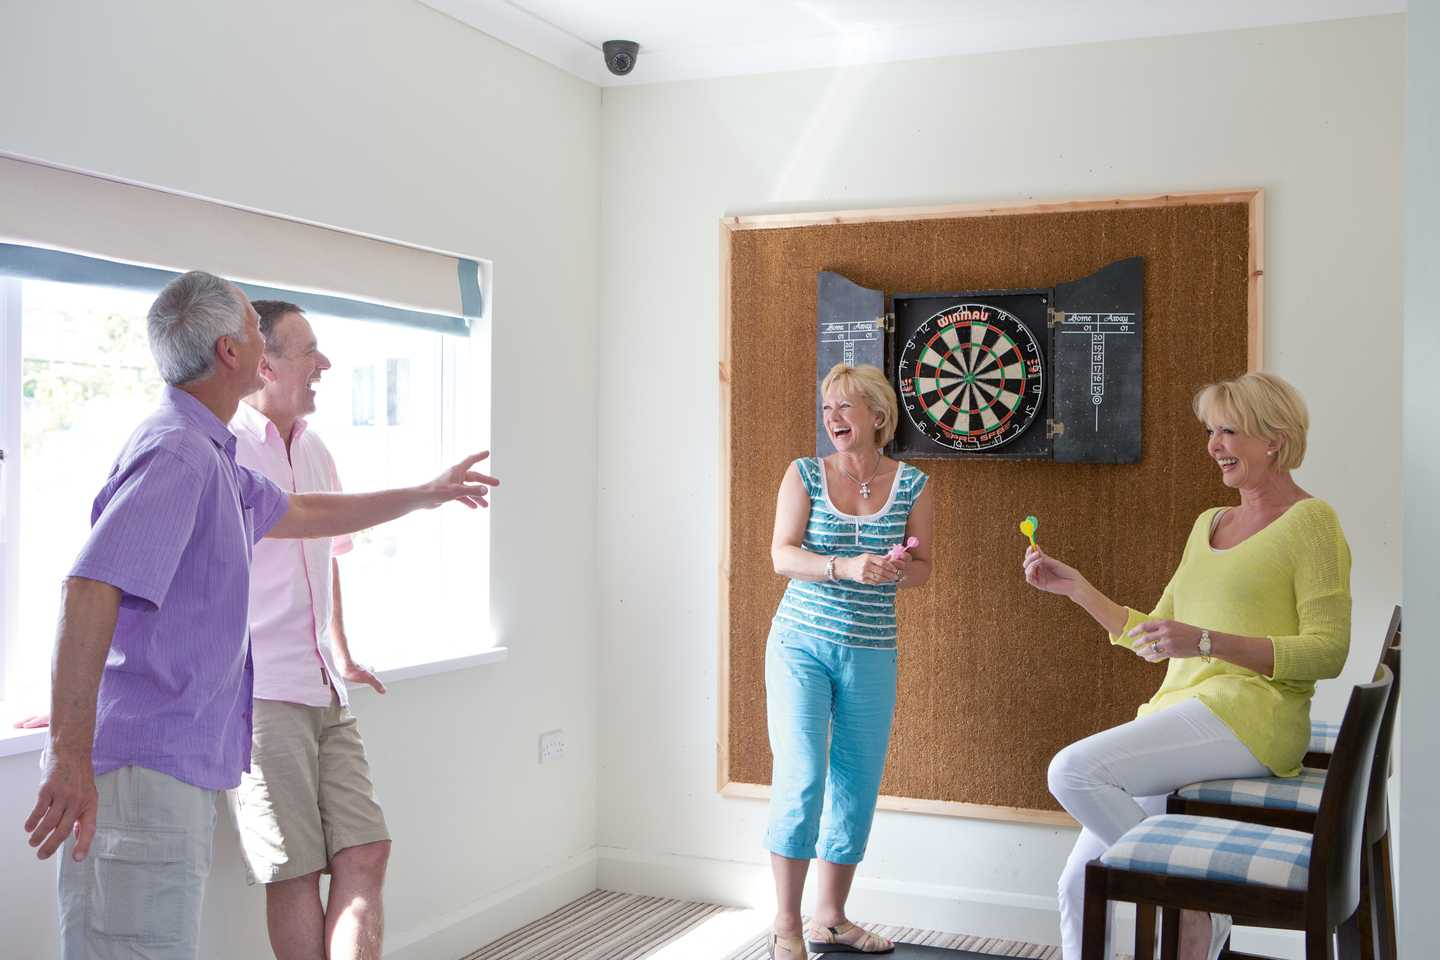 Guests playing darts in the Owners' Lounge